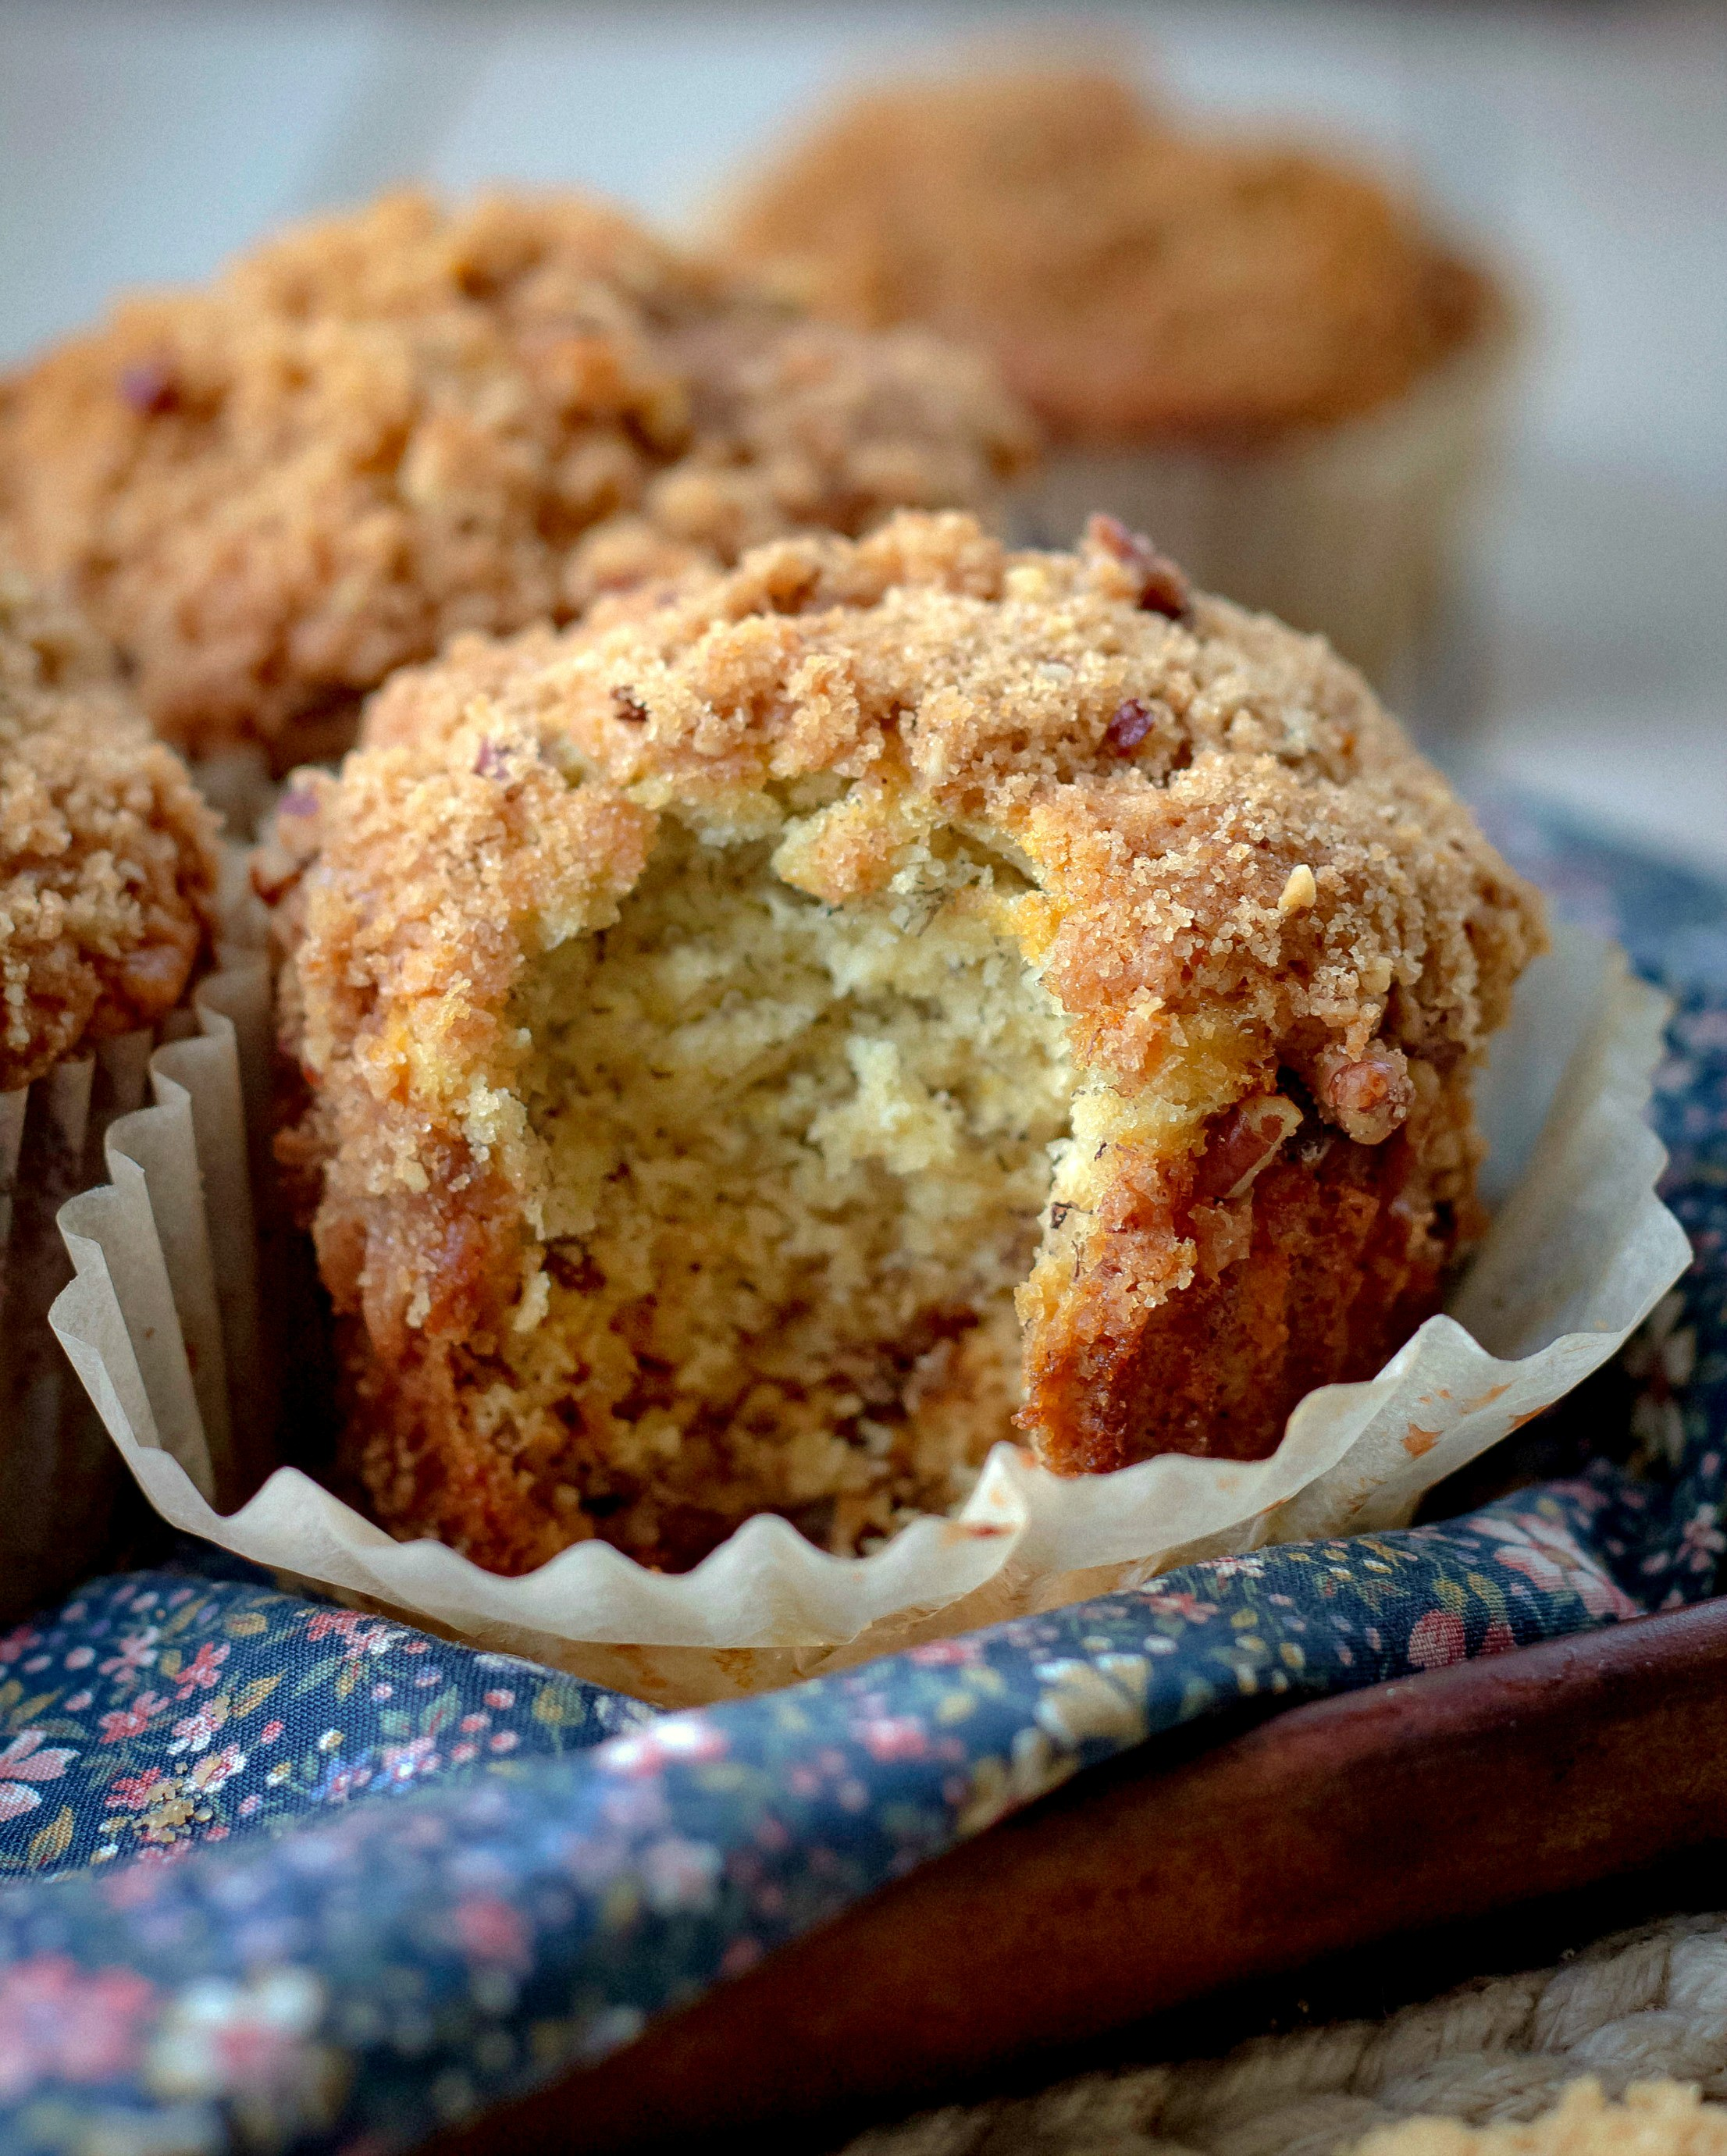 Ten utterly delicious melt-in-your-mouth muffin recipes